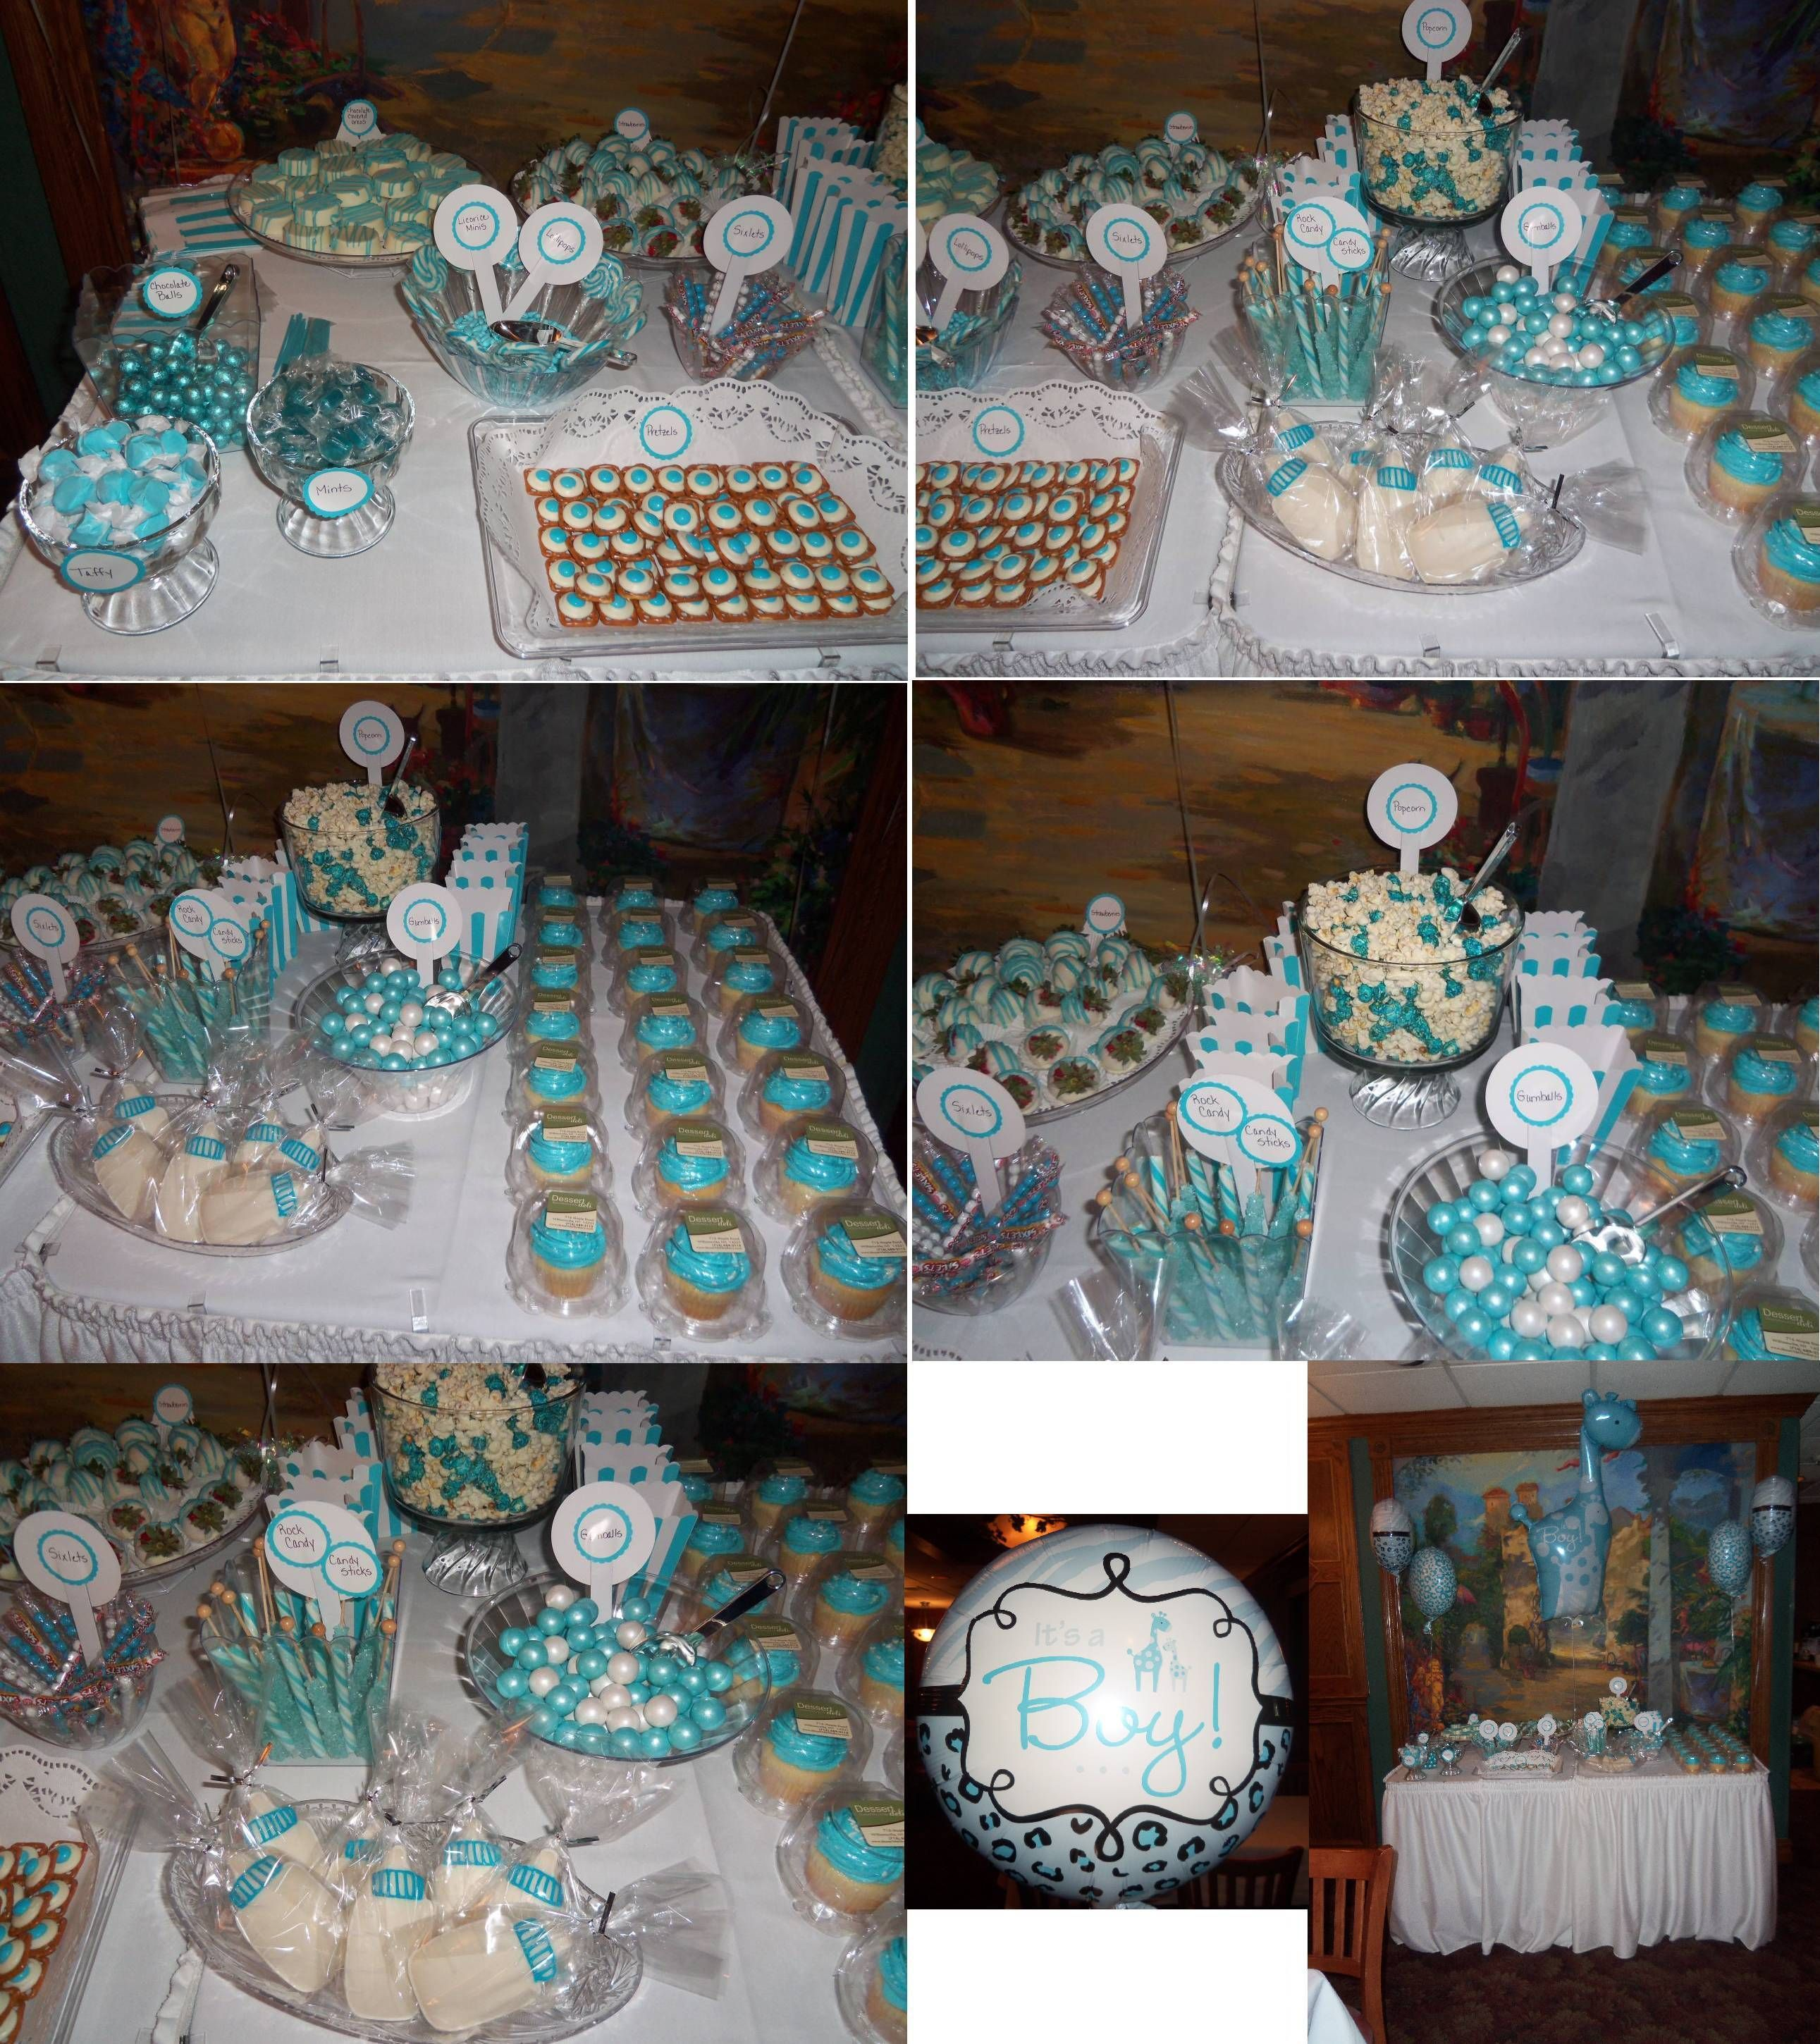 Candy For Baby Shower Ideas: Tiffany Blue & White Candy Bar/Dessert Table I Made For My